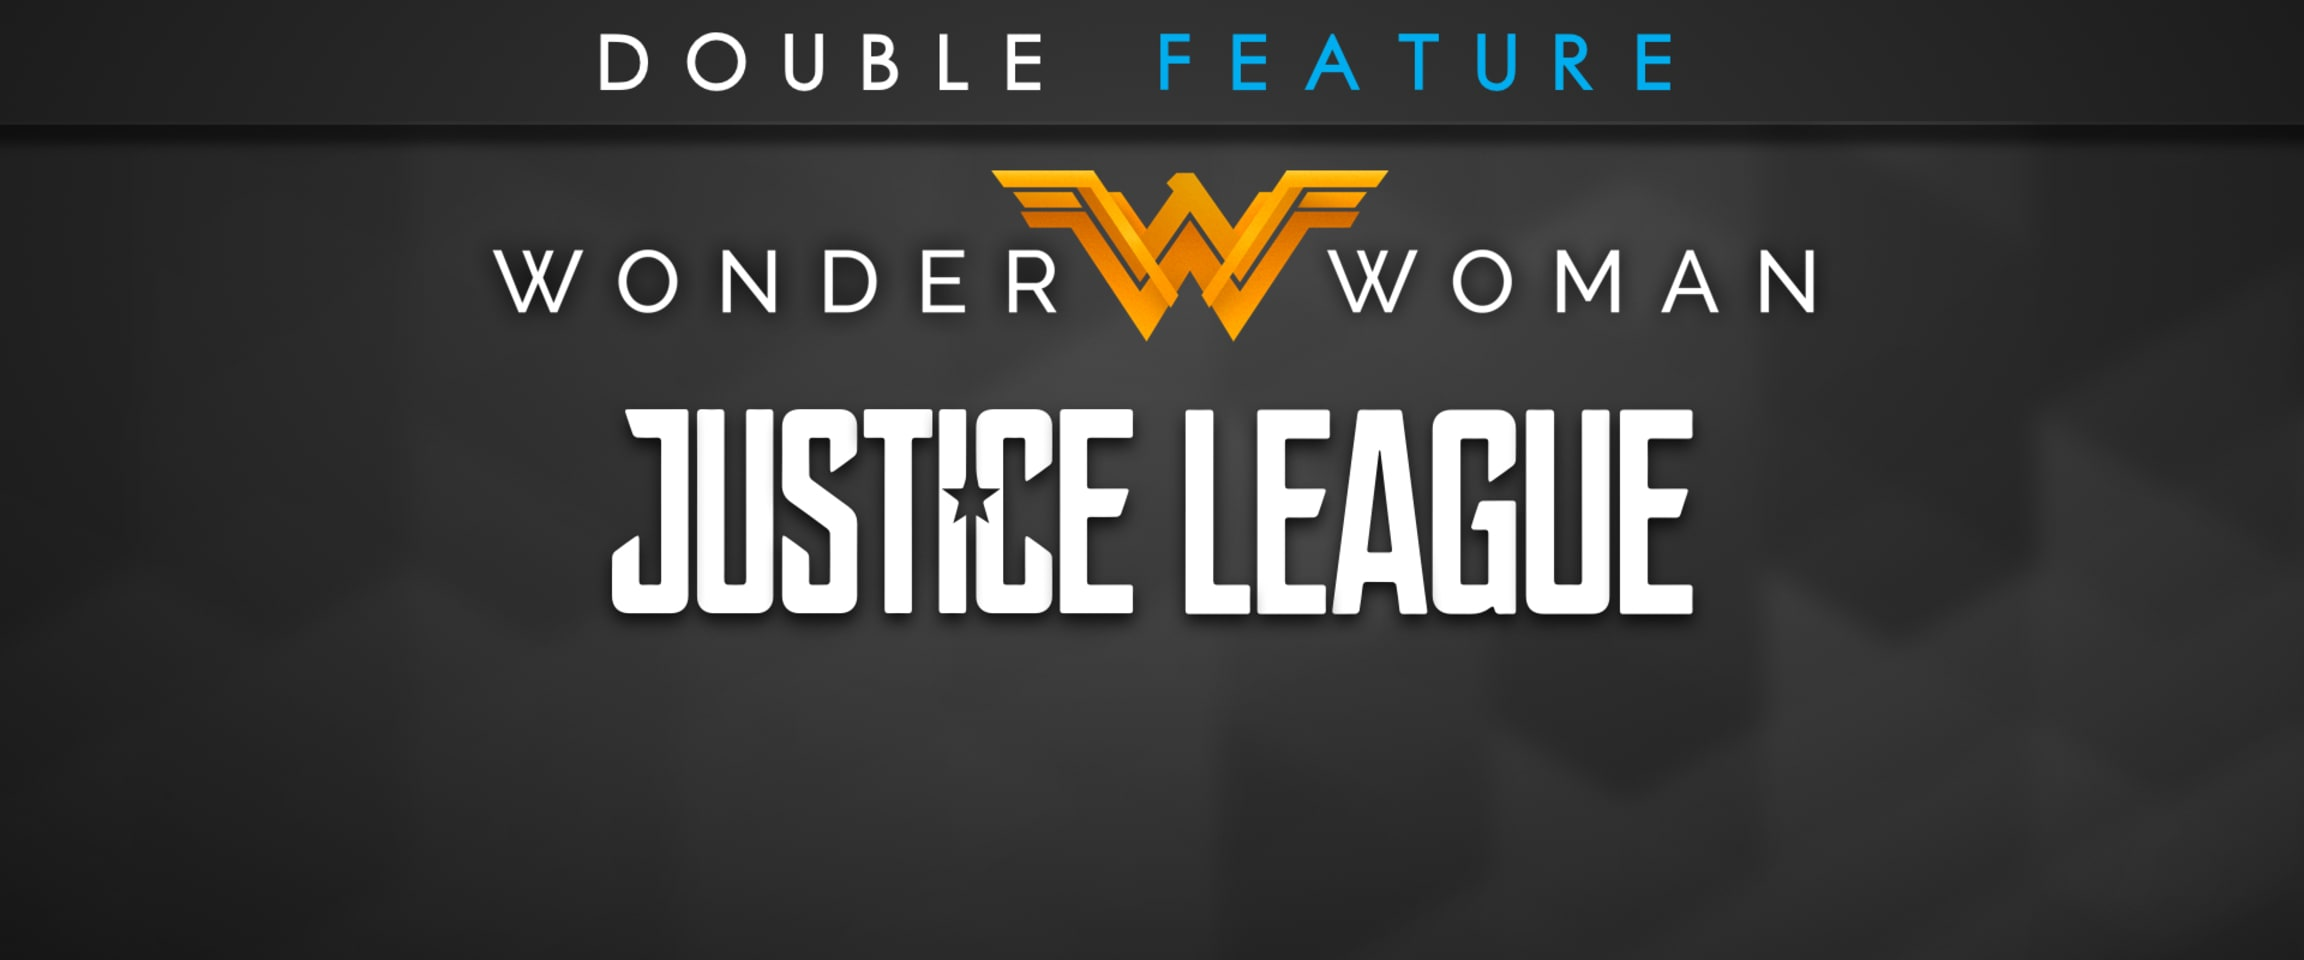 Galaxy theatres green valley cinema henderson nv reviews - Justice League Wonder Woman Double Feature